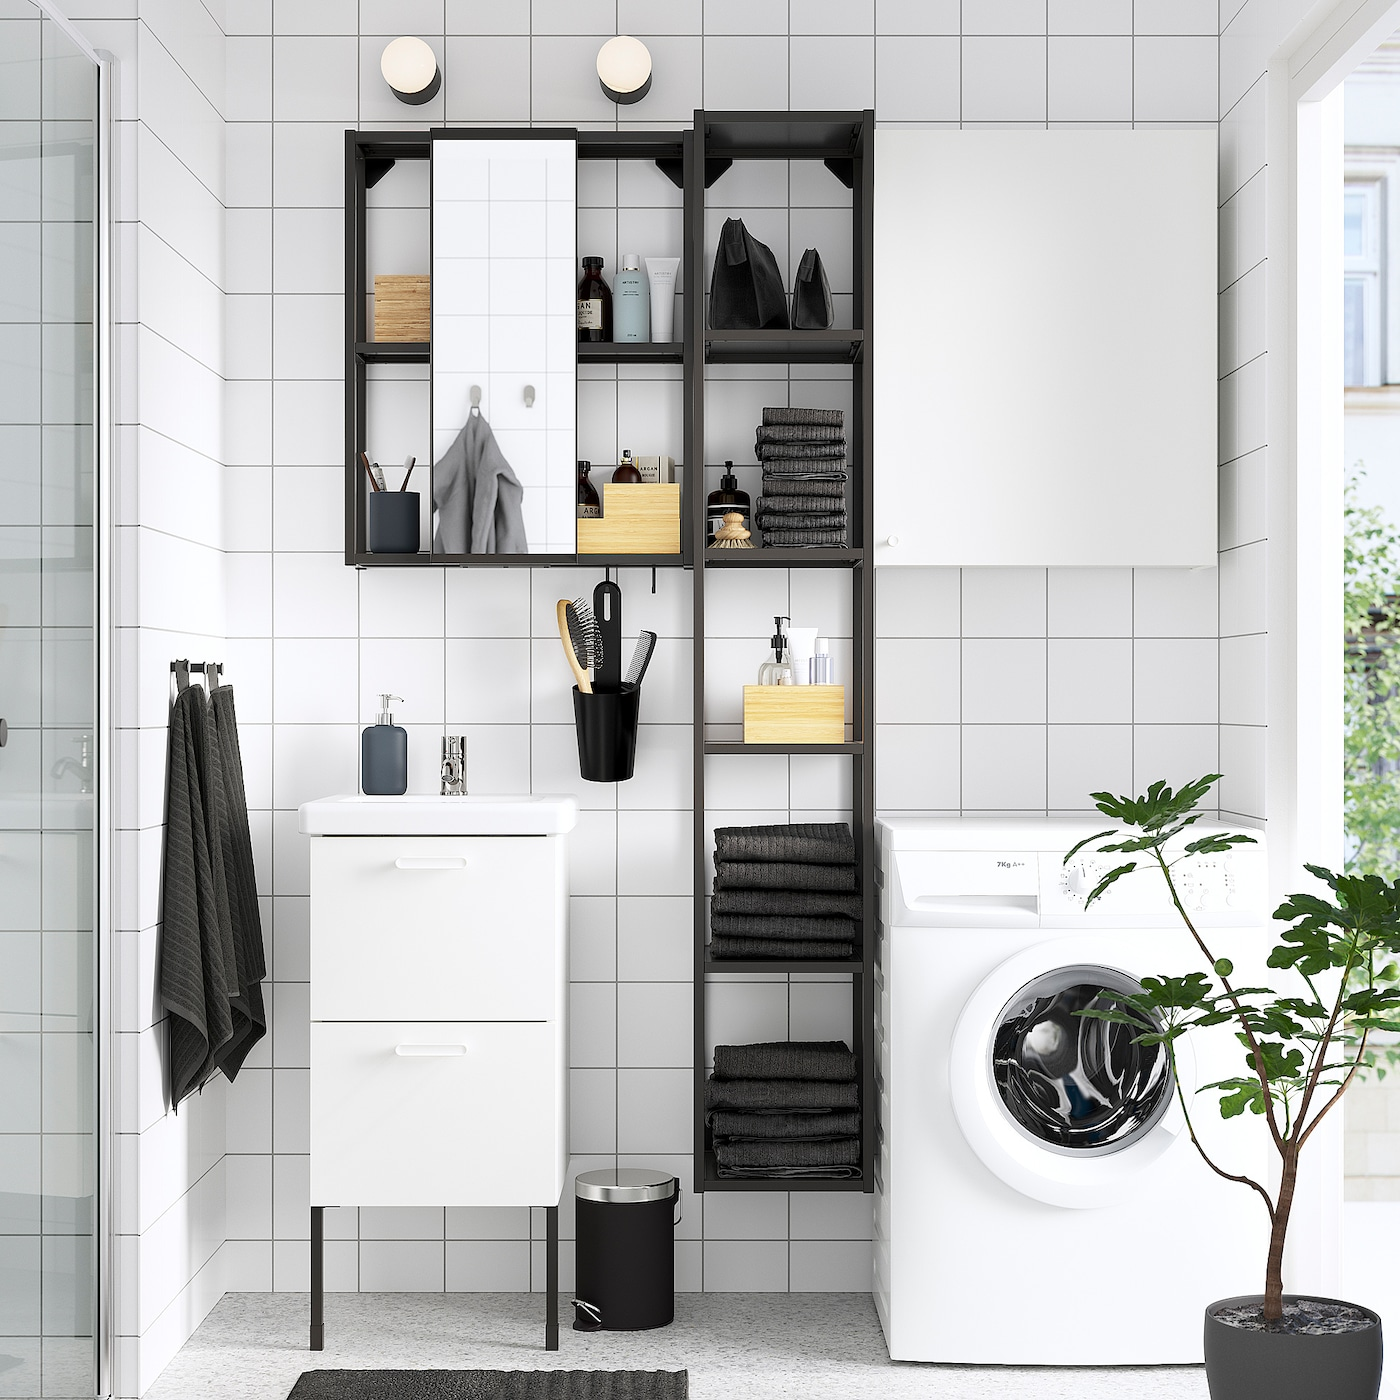 ENHET / TVÄLLEN Bathroom furniture, set of 16, white/anthracite Pilkån tap, 44x43x87 cm